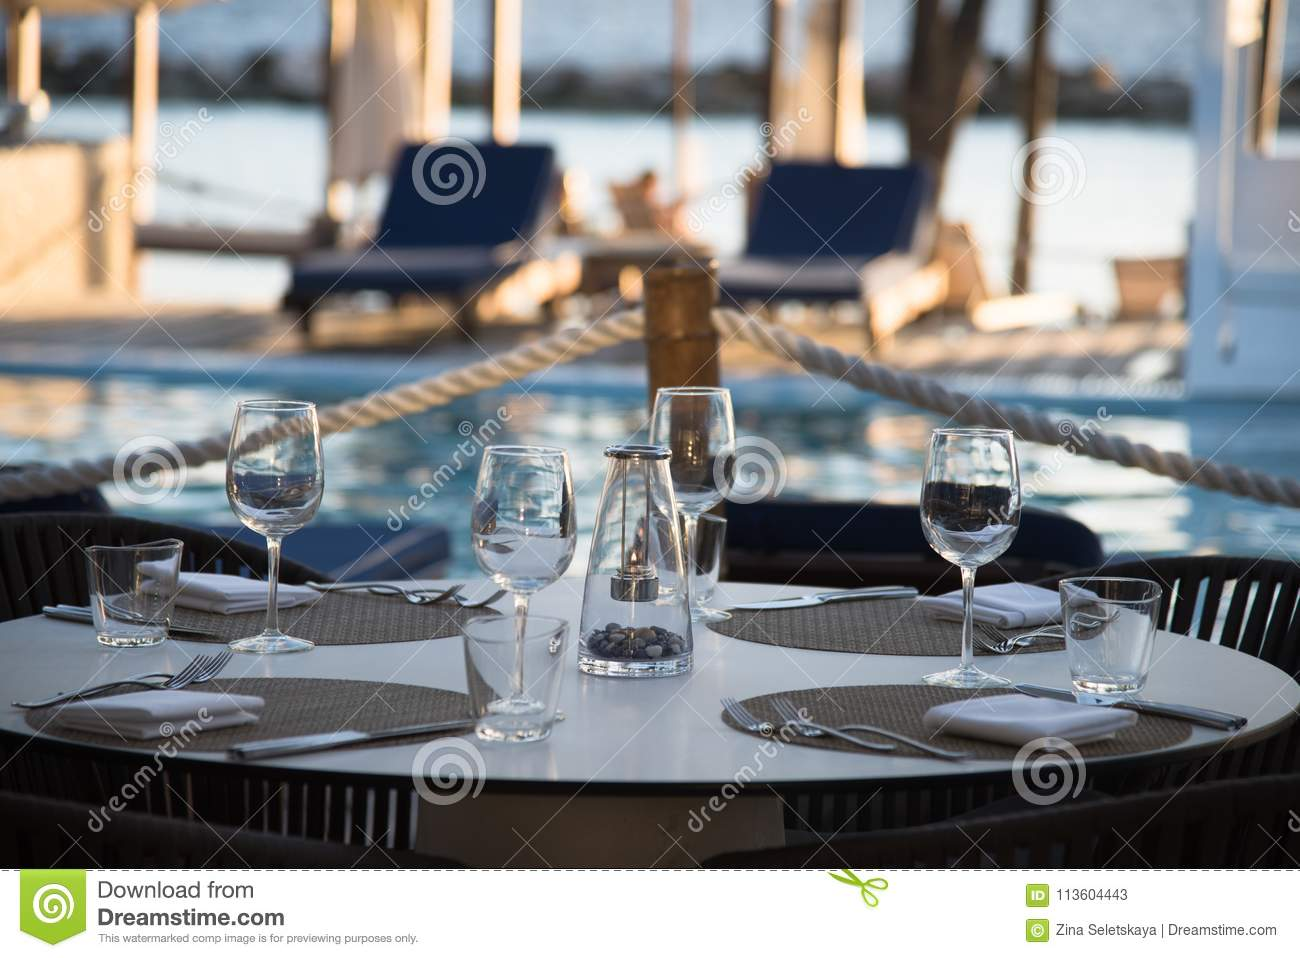 Fancy Outdoor Restaurant Table Setting Stock Image Image Of Knife Dining 113604443